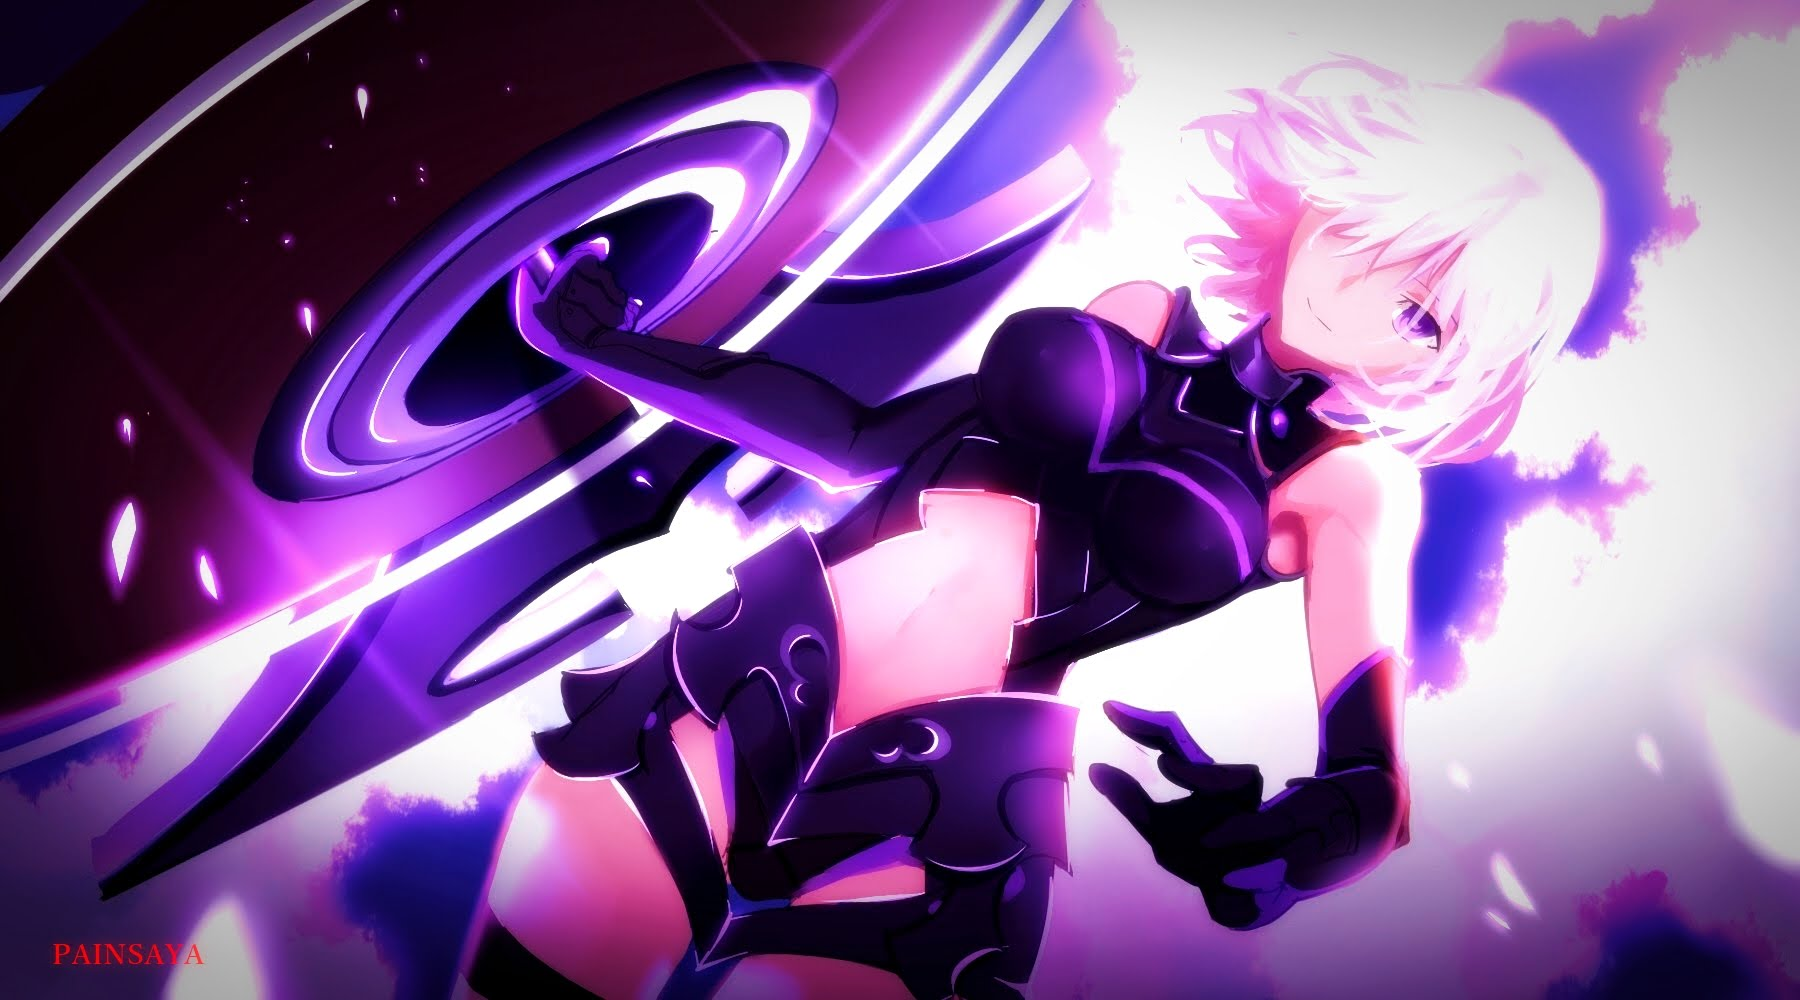 Fate Grand Order 壁紙 Hd Wallpaper Backgrounds Download